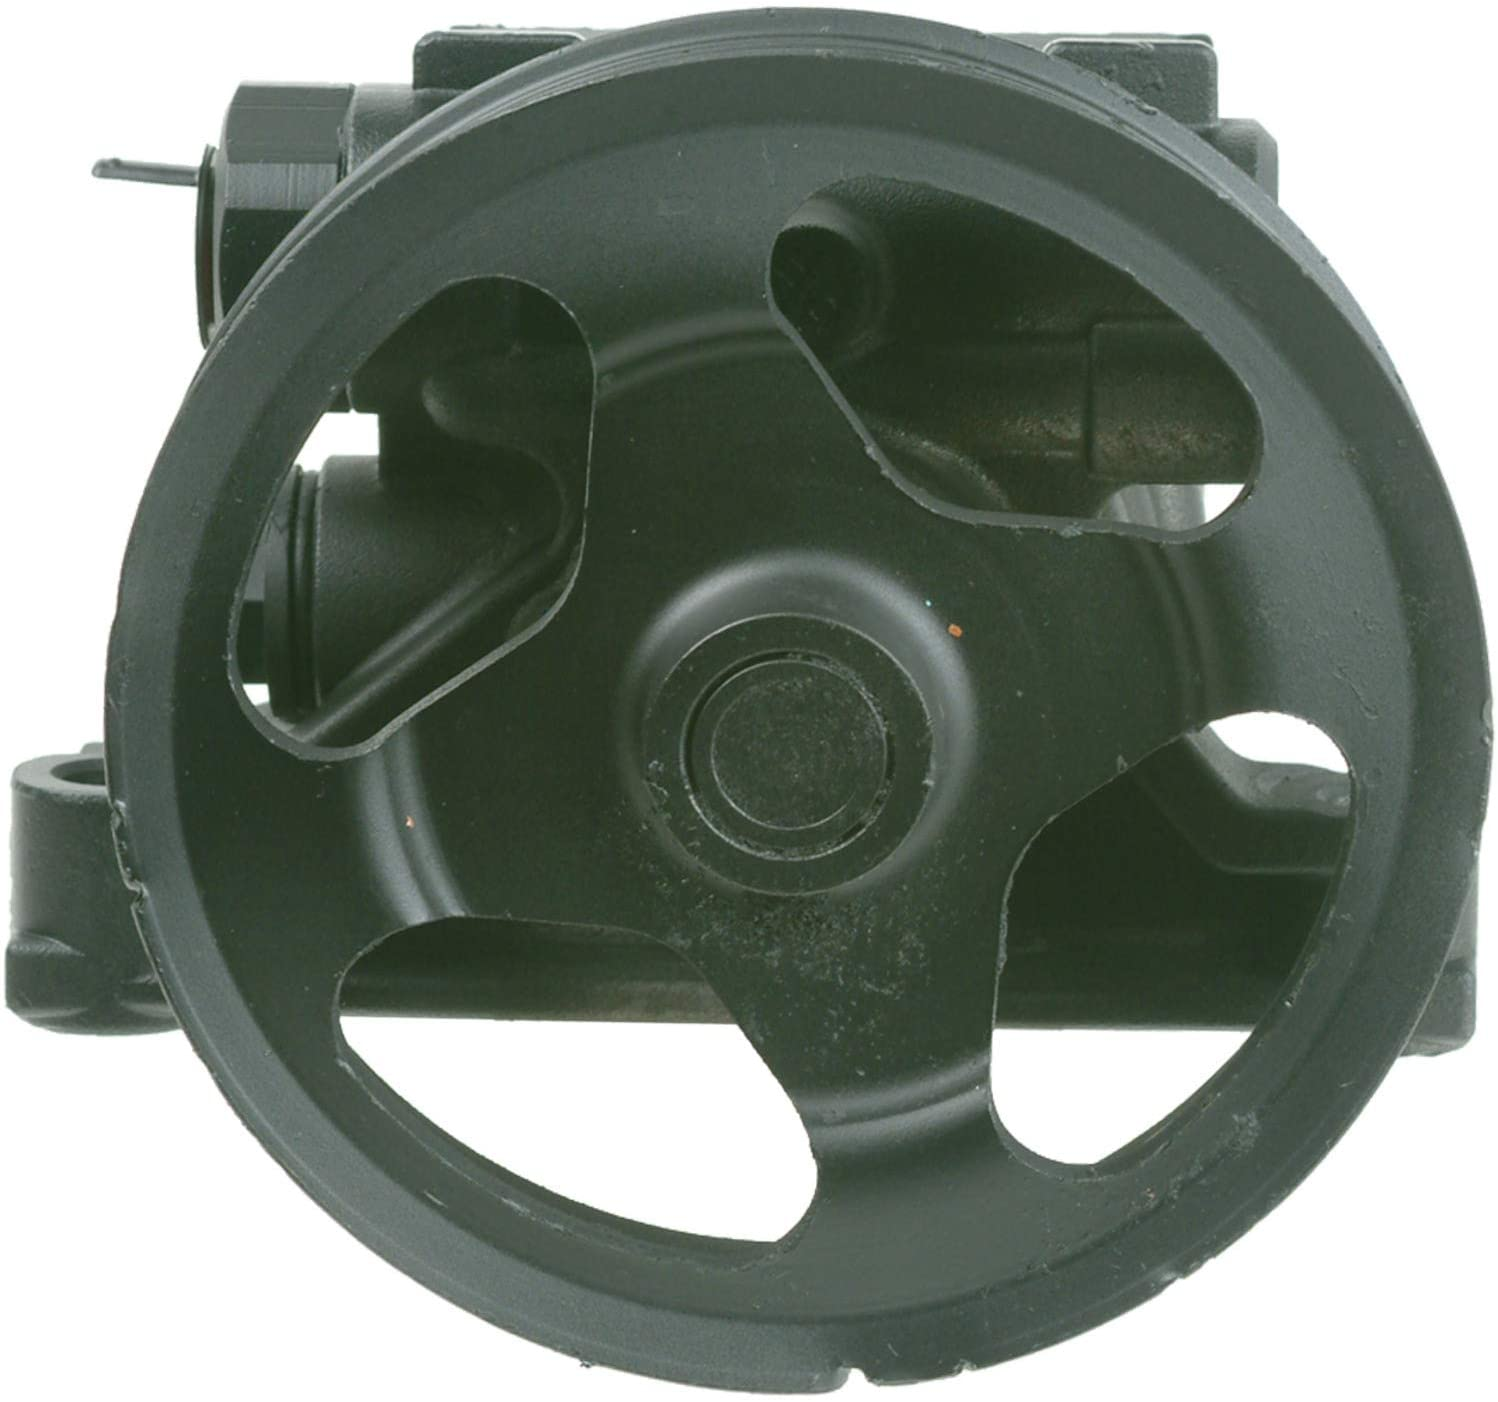 Cardone 21-5391 Remanufactured Import Power Steering Pump